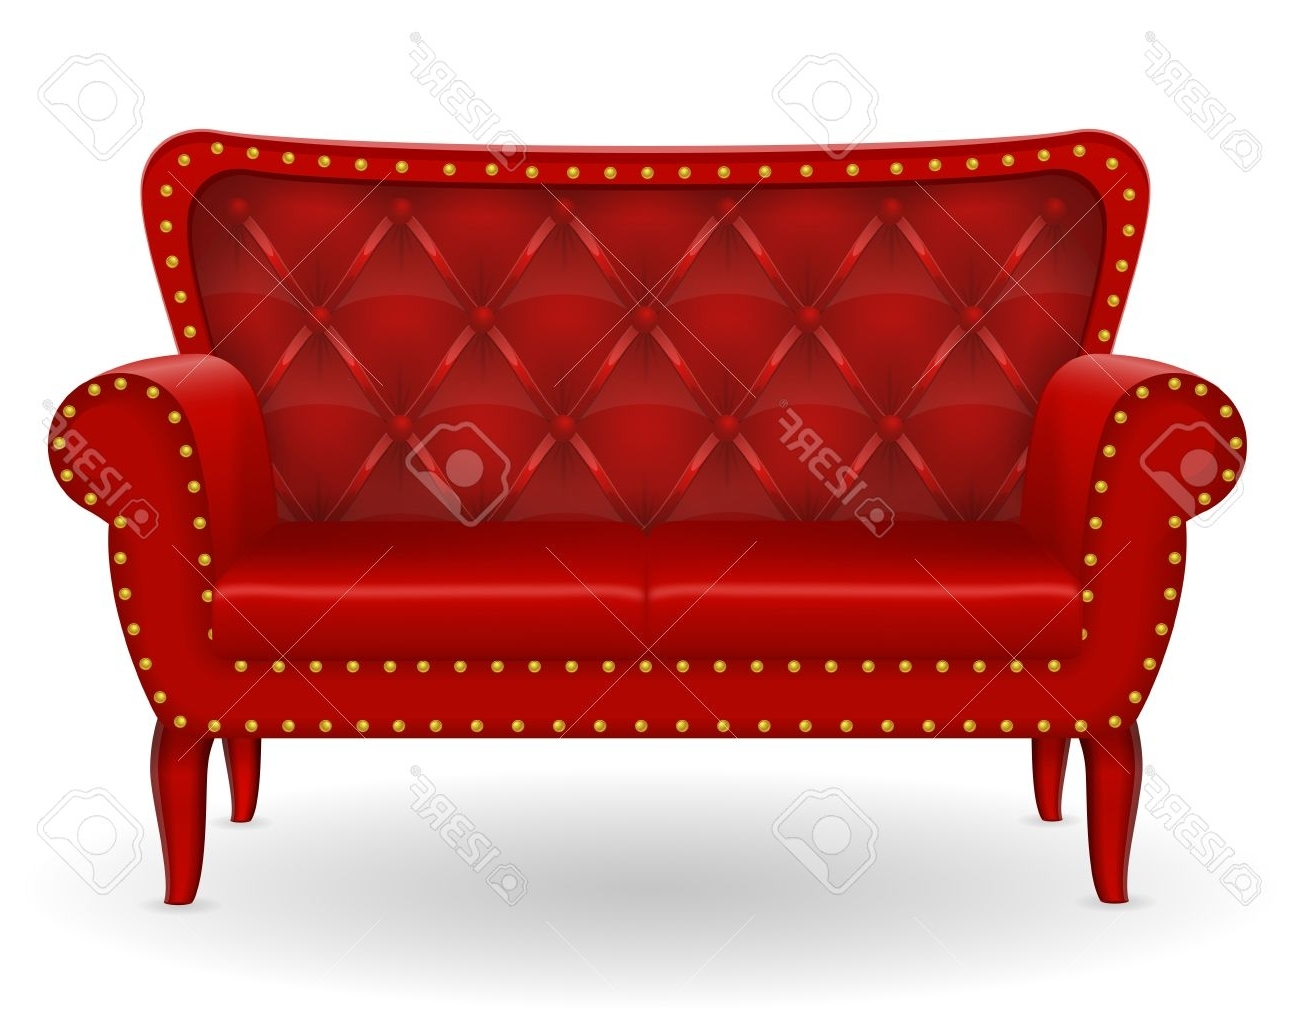 2017 Red Sofa Furniture Vector Illustration Isolated On White Pertaining To Red Sofa Chairs (View 1 of 15)